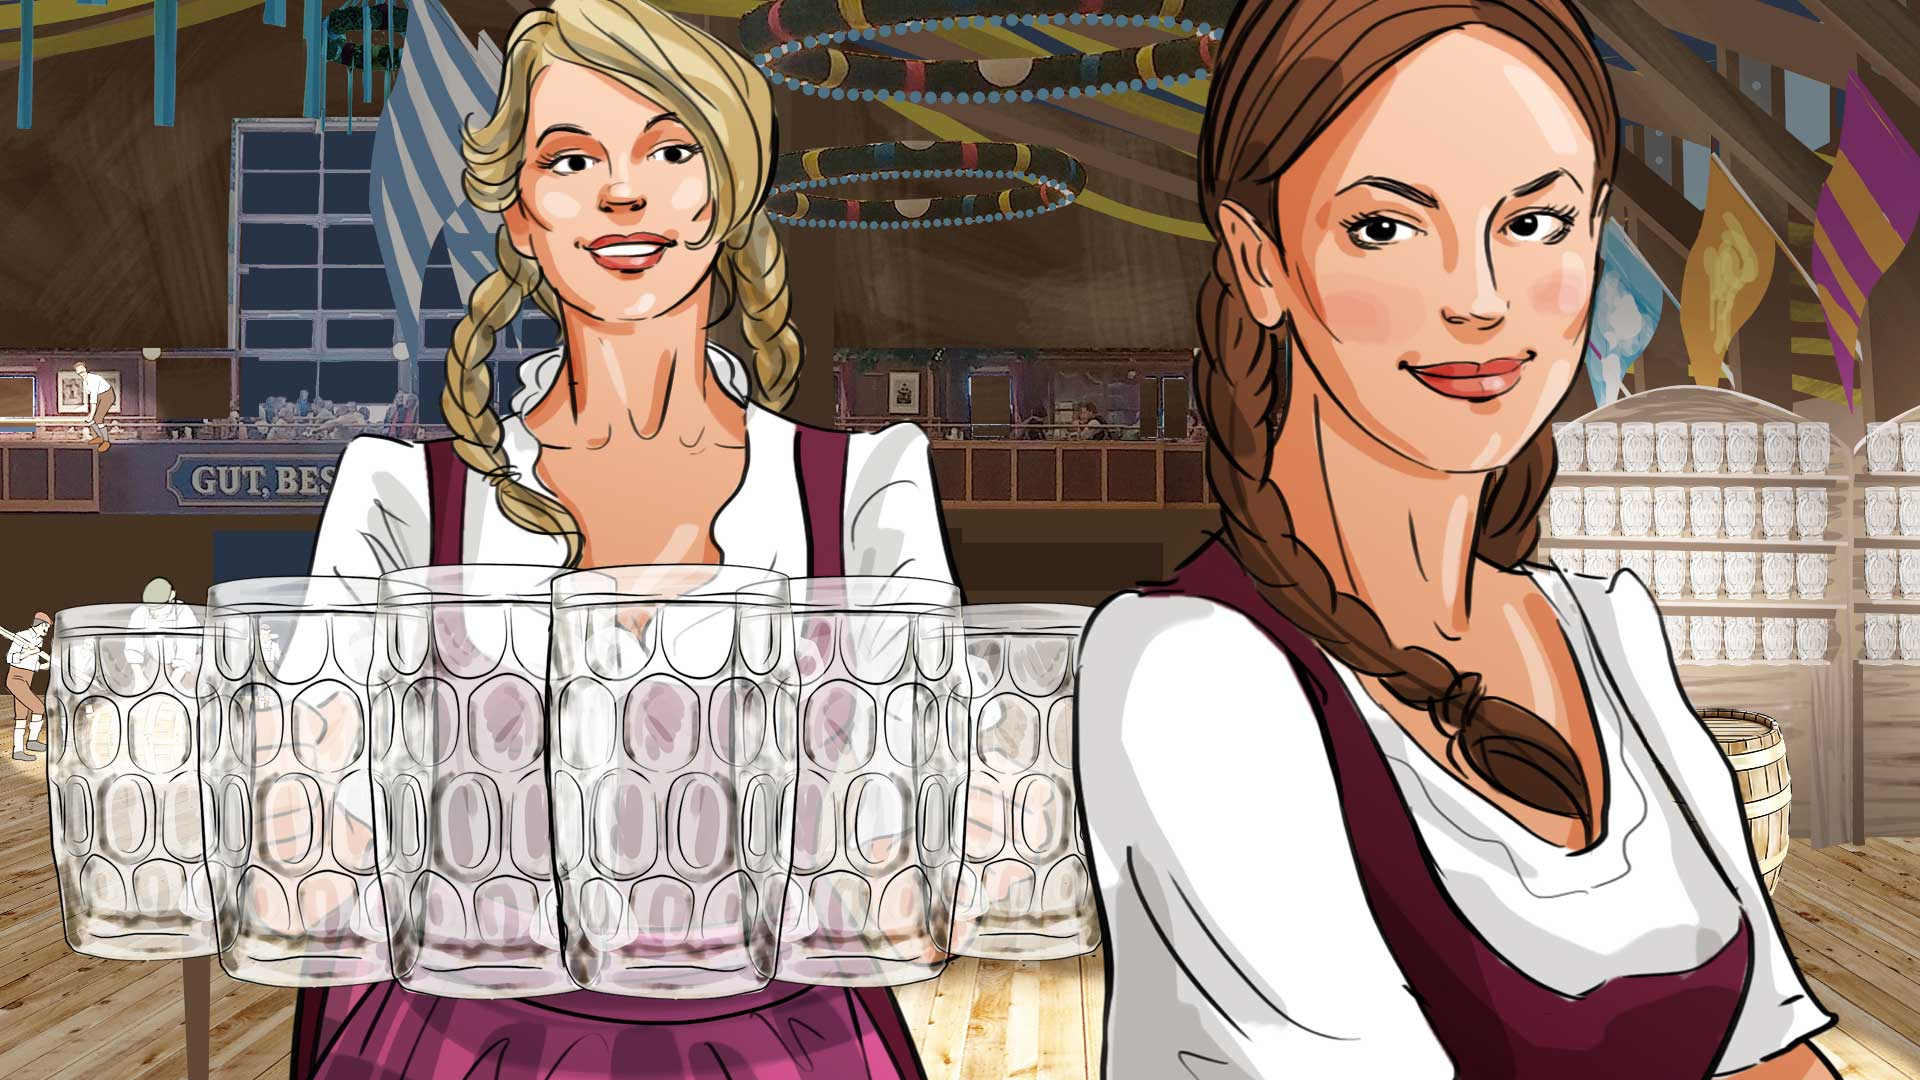 girls oktoberfest beer illustration advertising